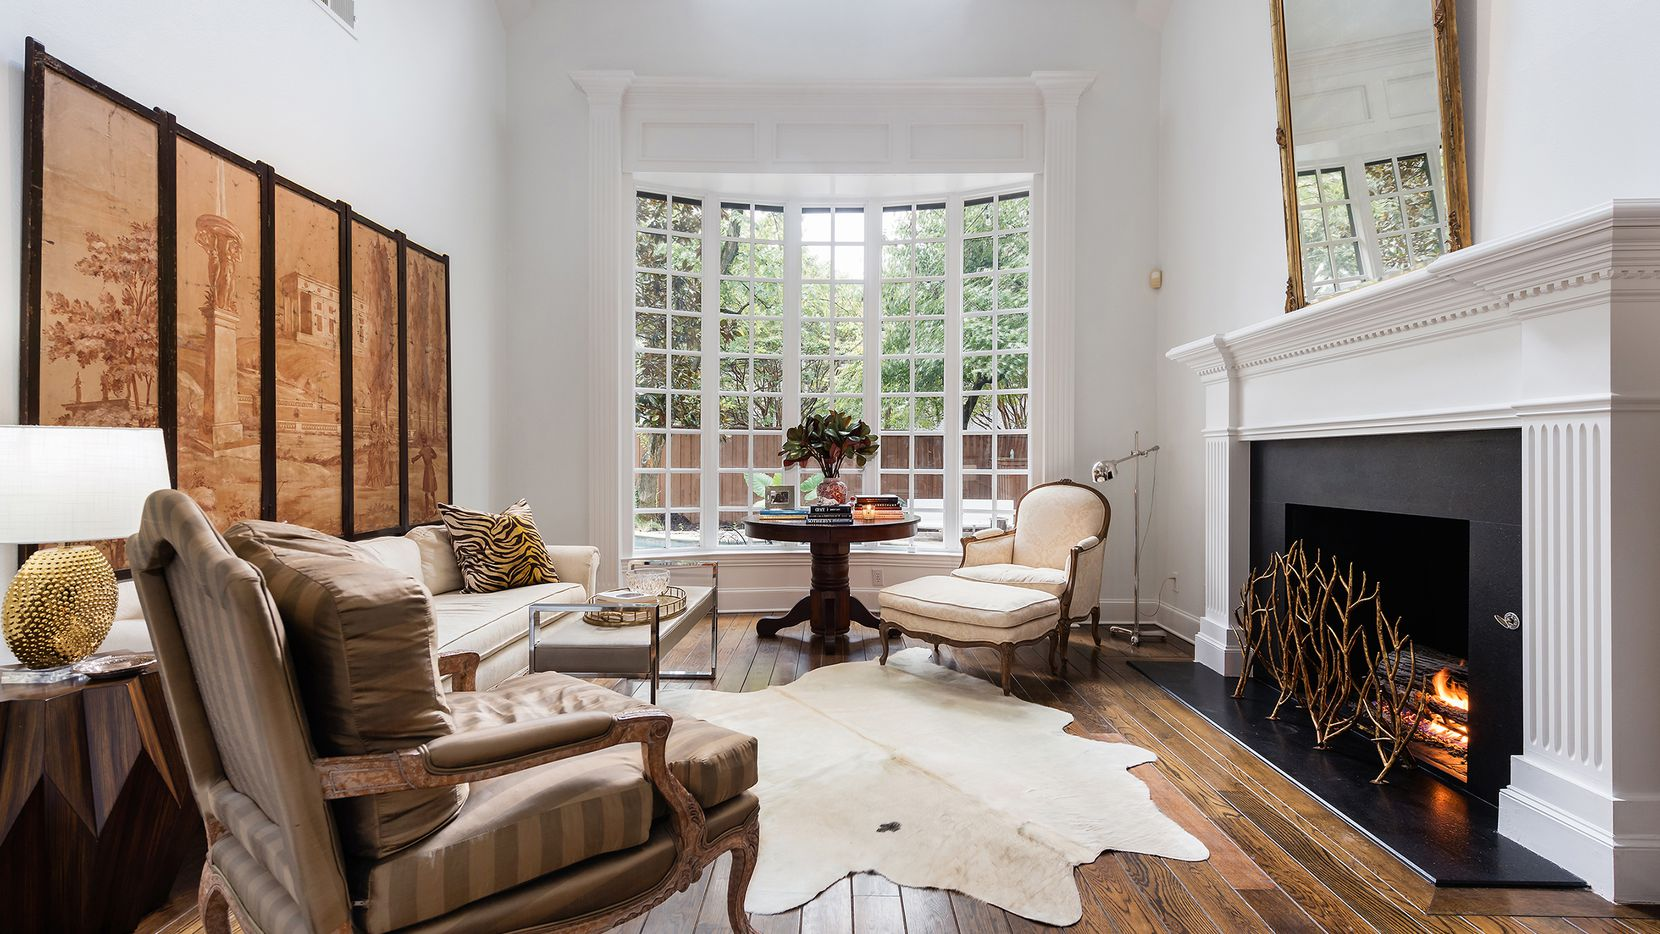 The residence at 6444 Mimosa Lane in Preston Hollow has four living areas and a remodeled kitchen.